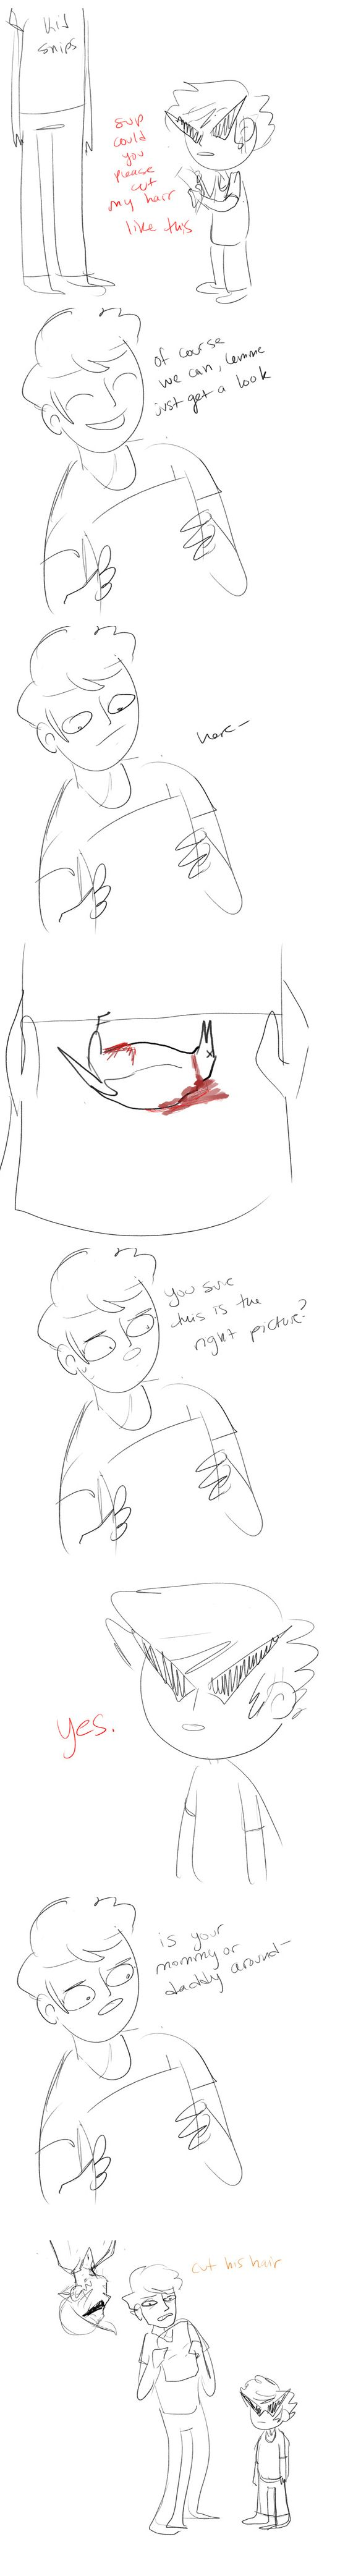 Dave's first haircut. (credit to http://tinkerlu.tumblr.com ) Haha, Oh my goodness, Bro in the last panel. XD